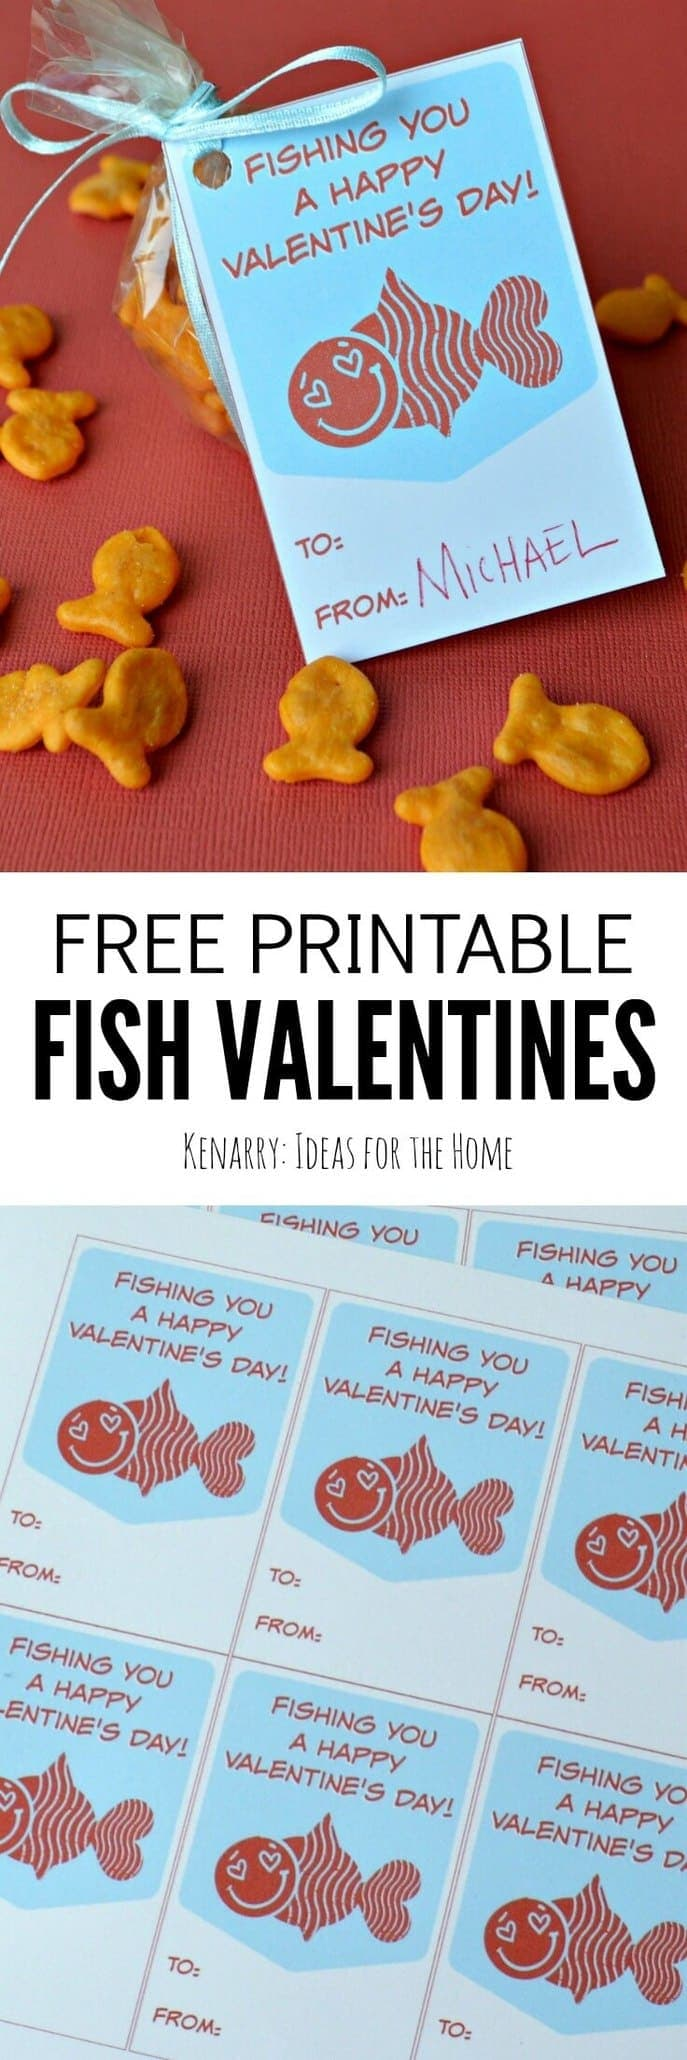 image regarding Goldfish Valentine Printable identify Fish Valentines: Totally free Printable Playing cards for Young children